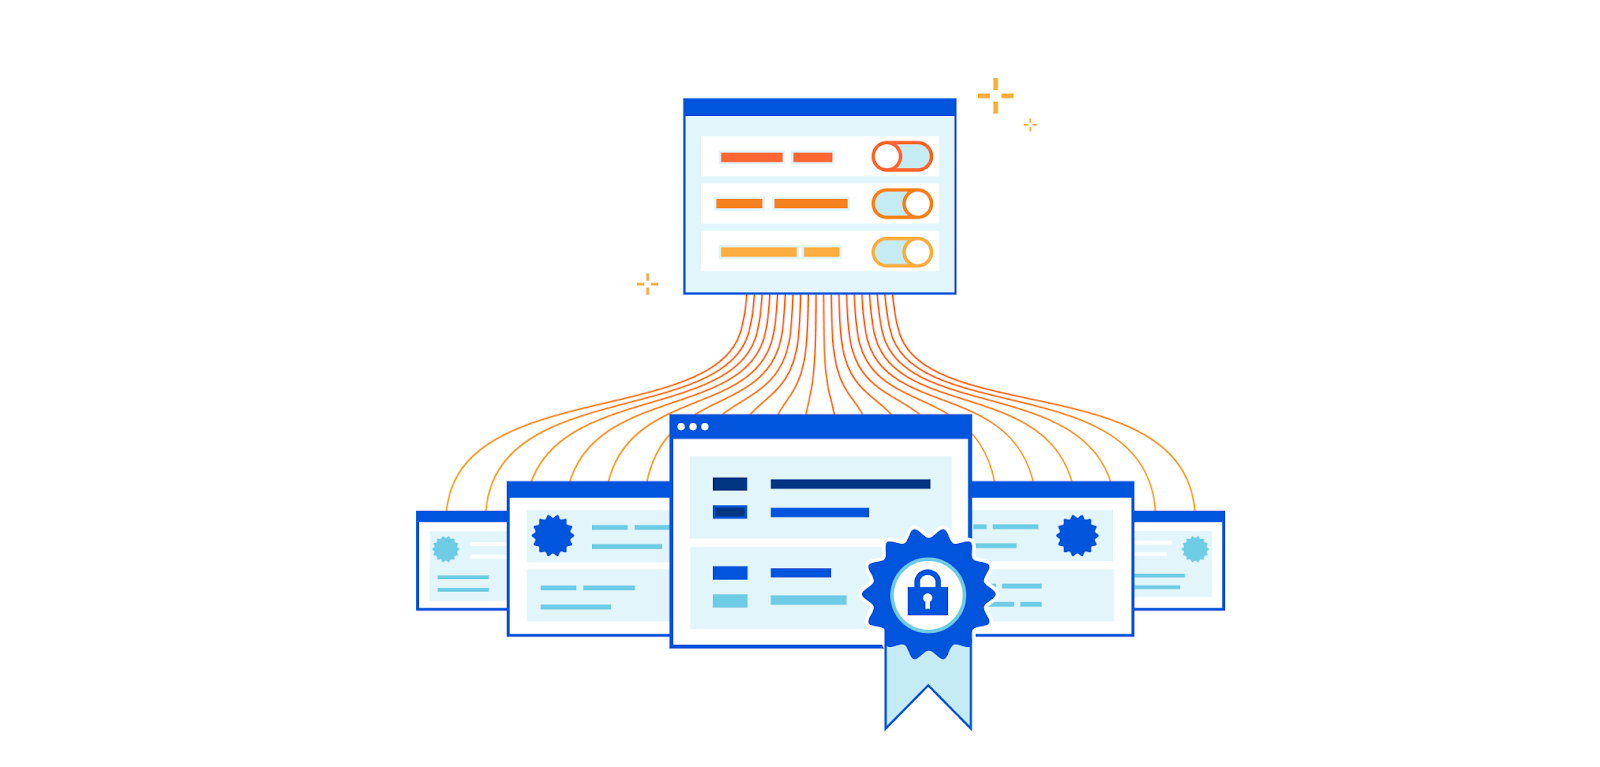 Introducing: Advanced Certificate Manager